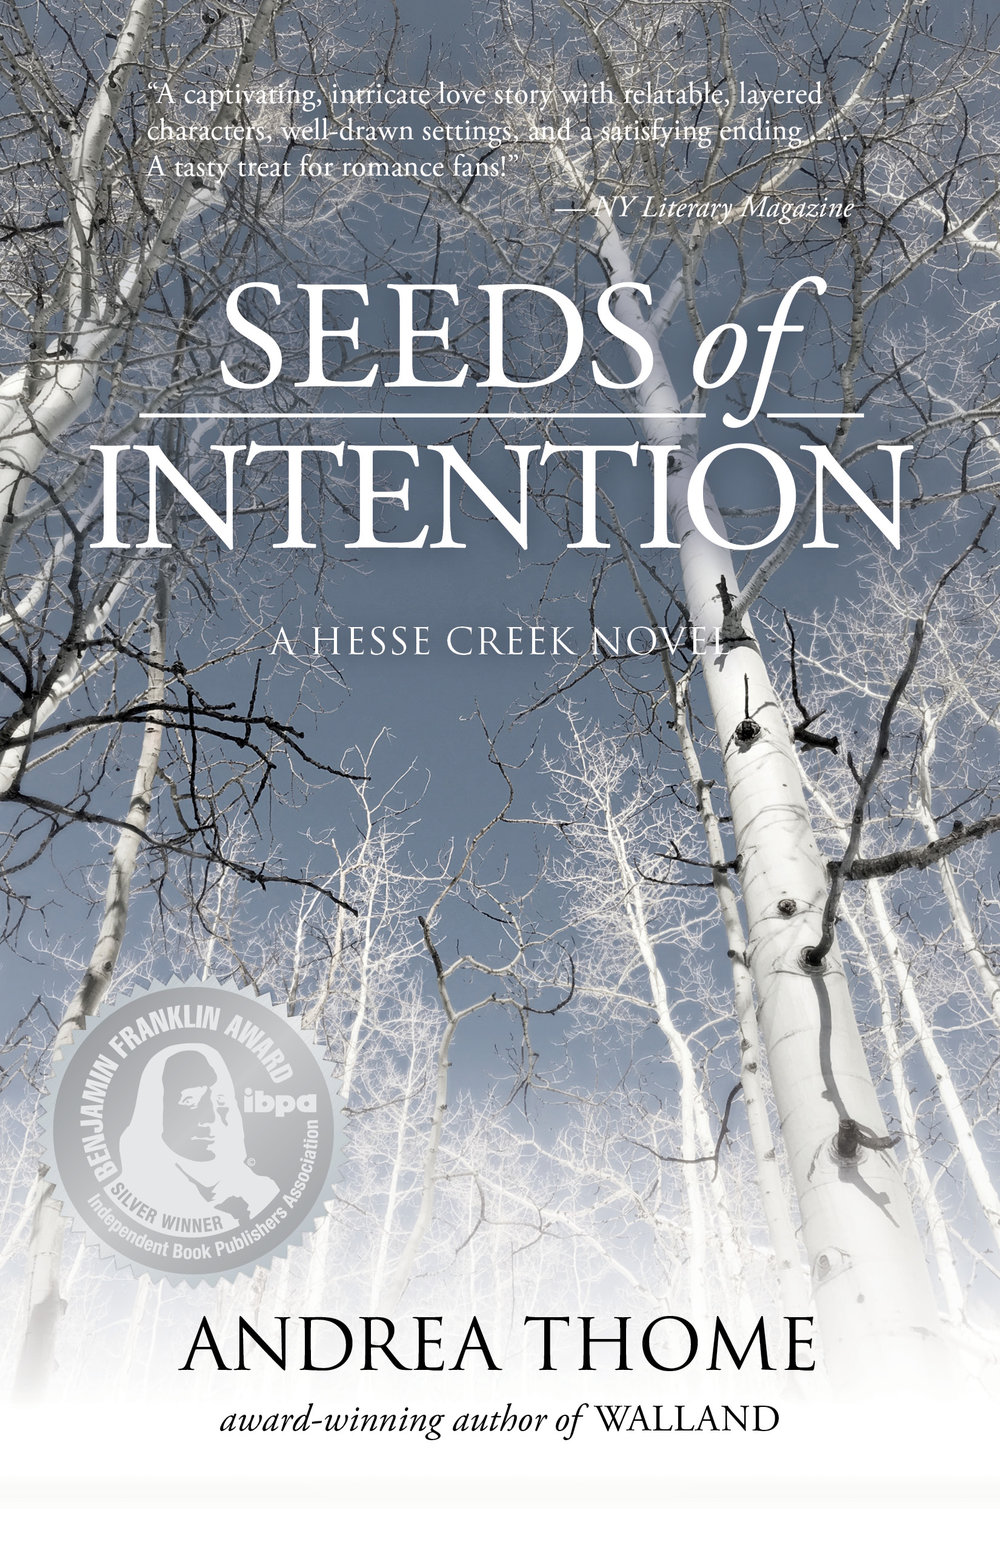 thome-seedsofintention-CV-BFA.jpg